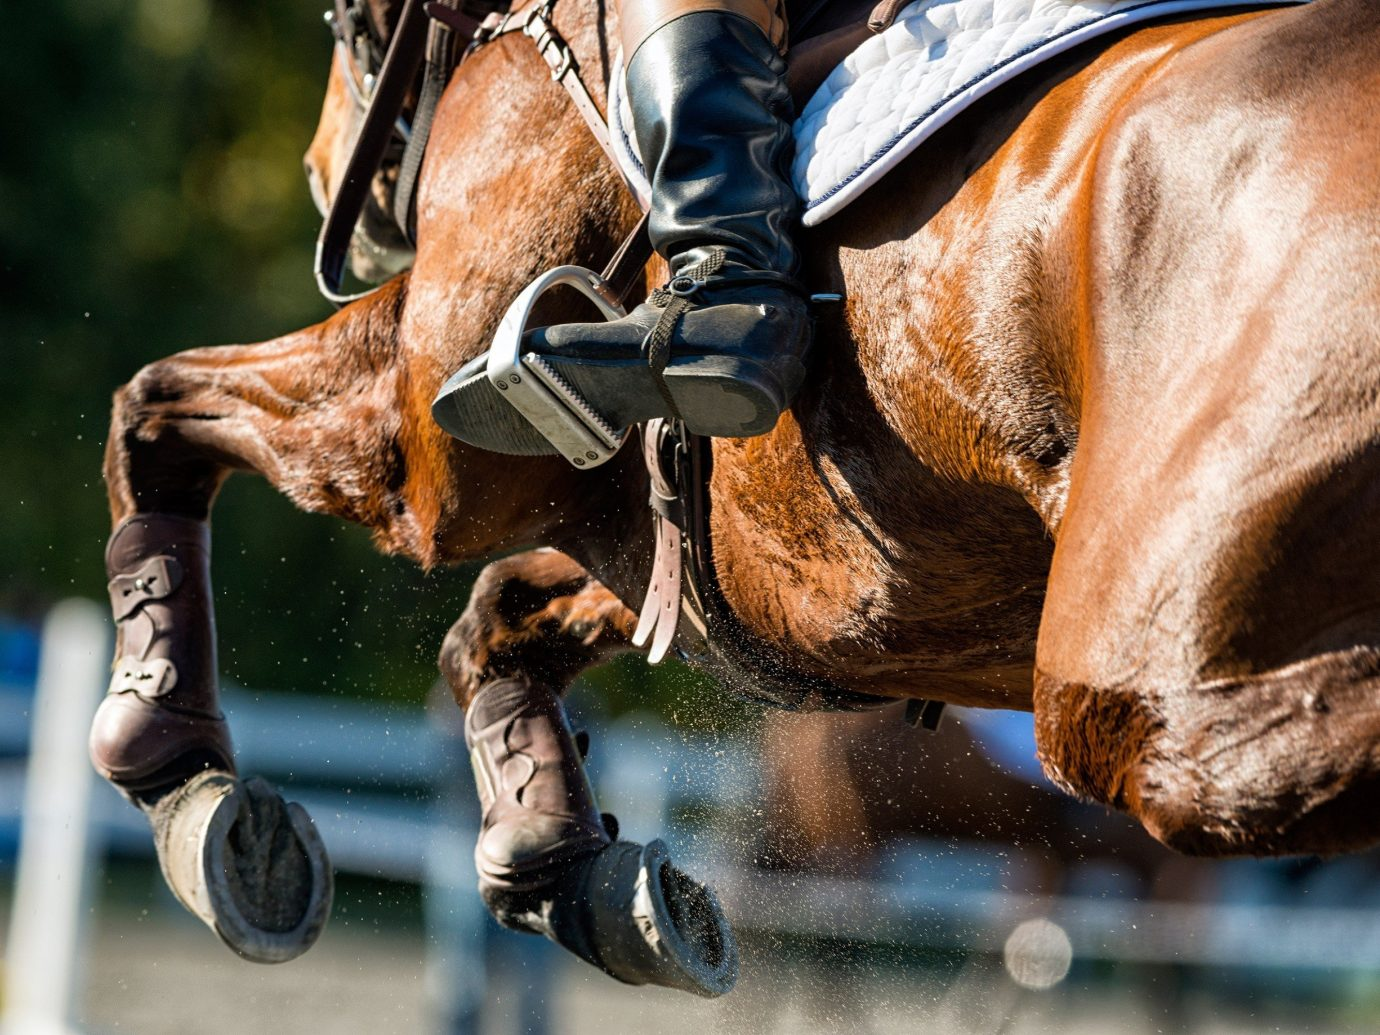 Offbeat horse outdoor english riding equestrianism eventing sports jockey equestrian sport stallion outdoor recreation horse like mammal animal sports extreme sport jumping riding